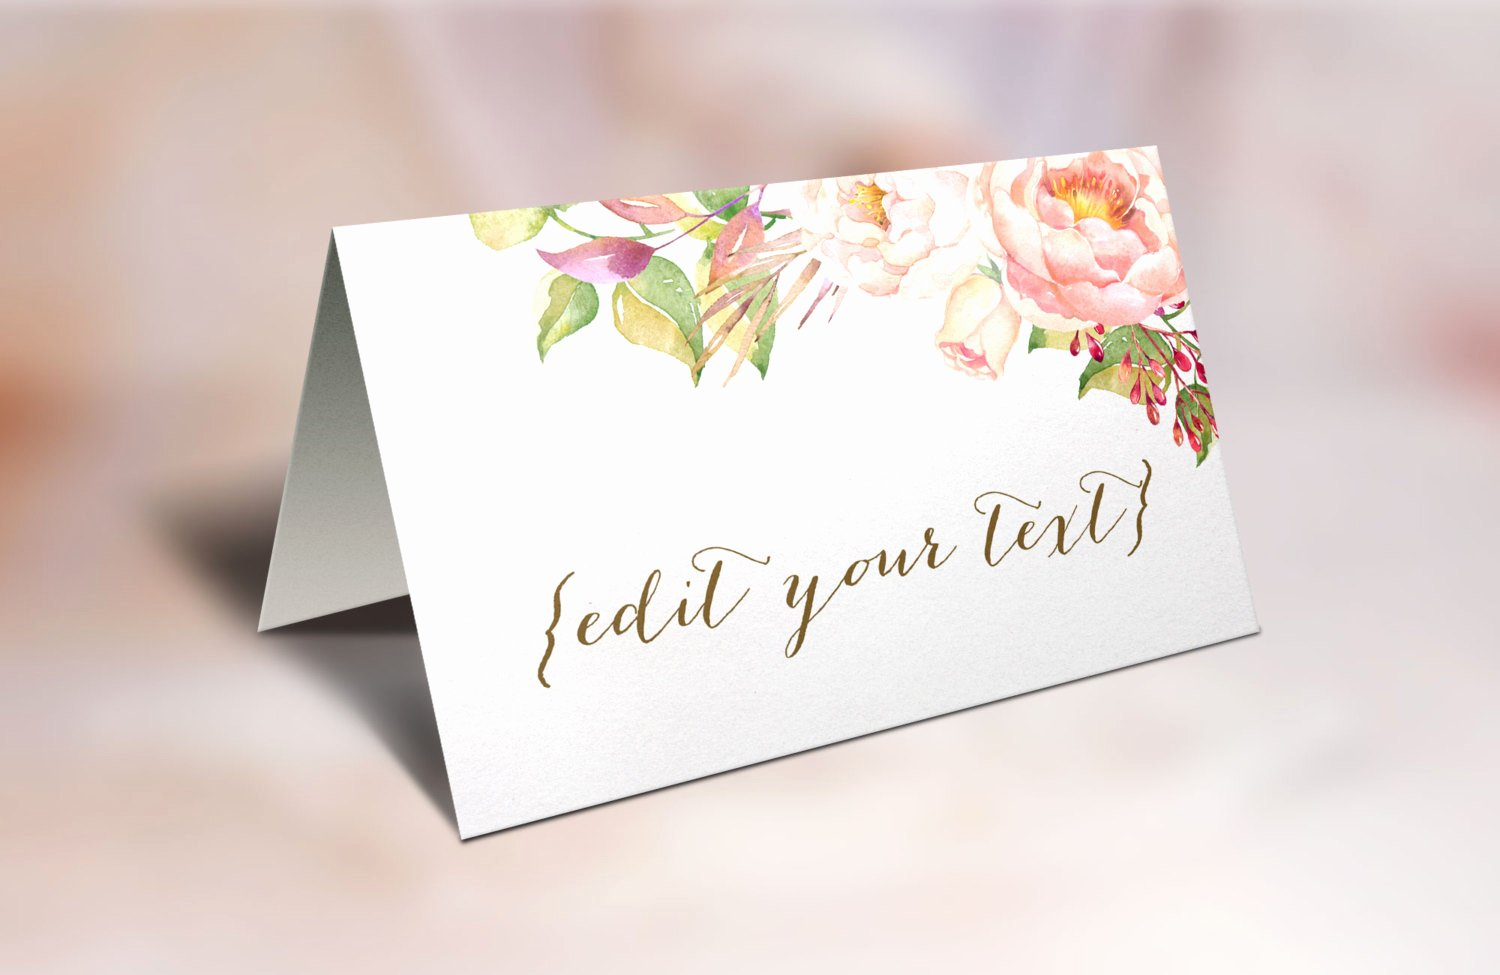 Free Printable Place Cards Inspirational Printable Place Cards Wedding Place Cards Floral Place Cards